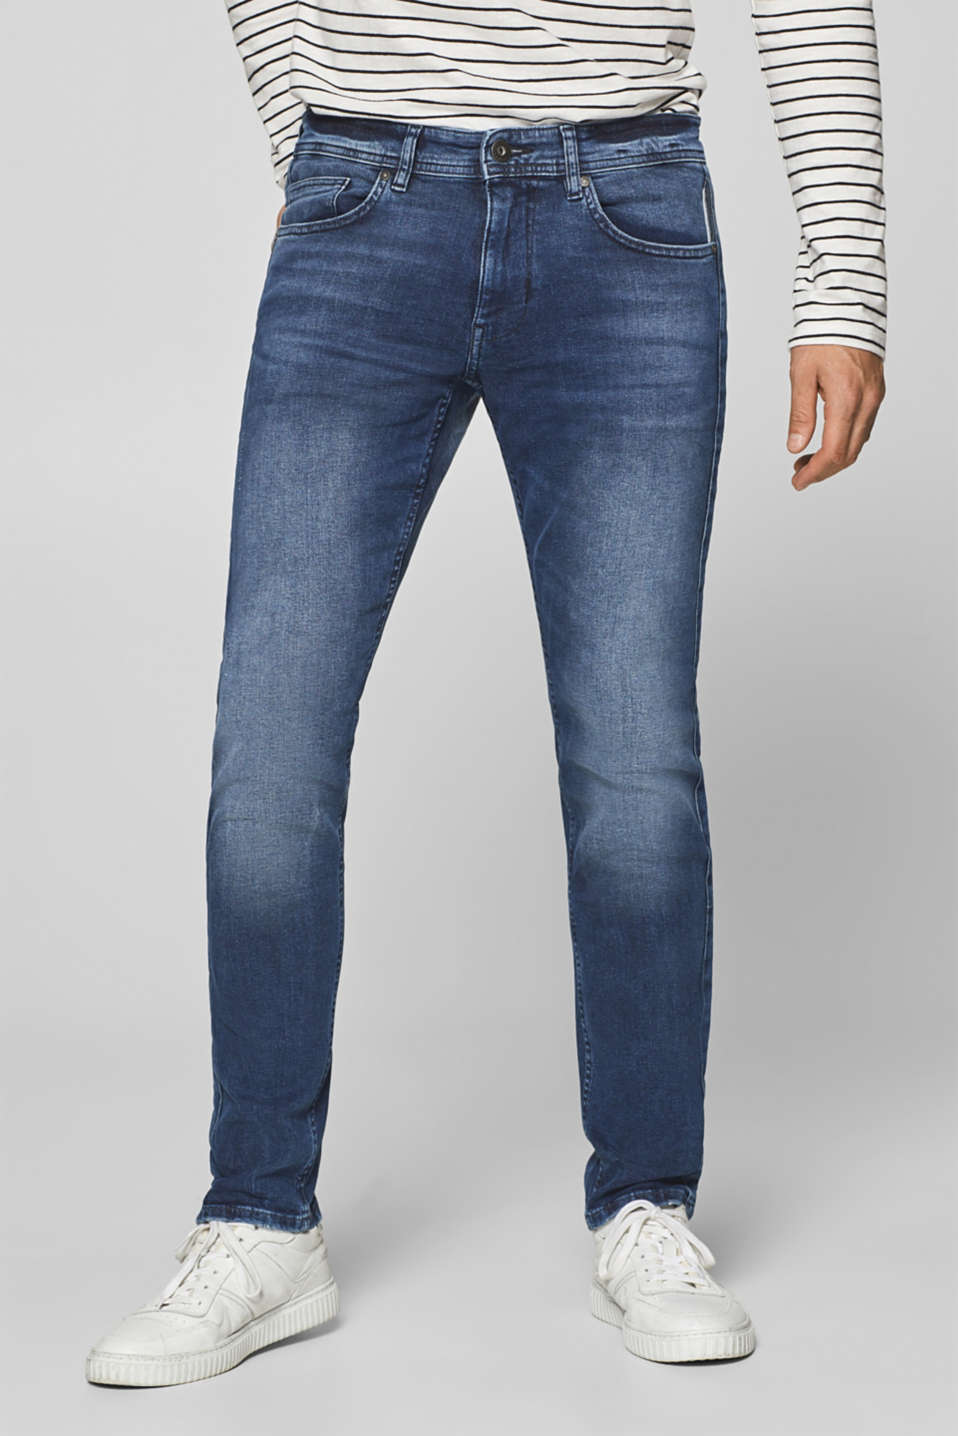 edc - Stretch jeans with tuxedo stripes